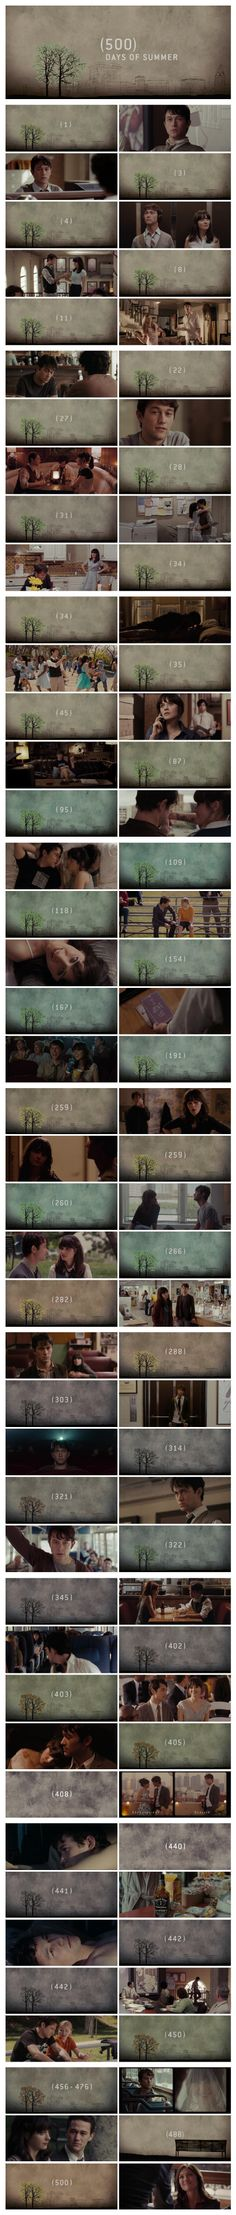 (500) Days of Summer - as a linear narrative